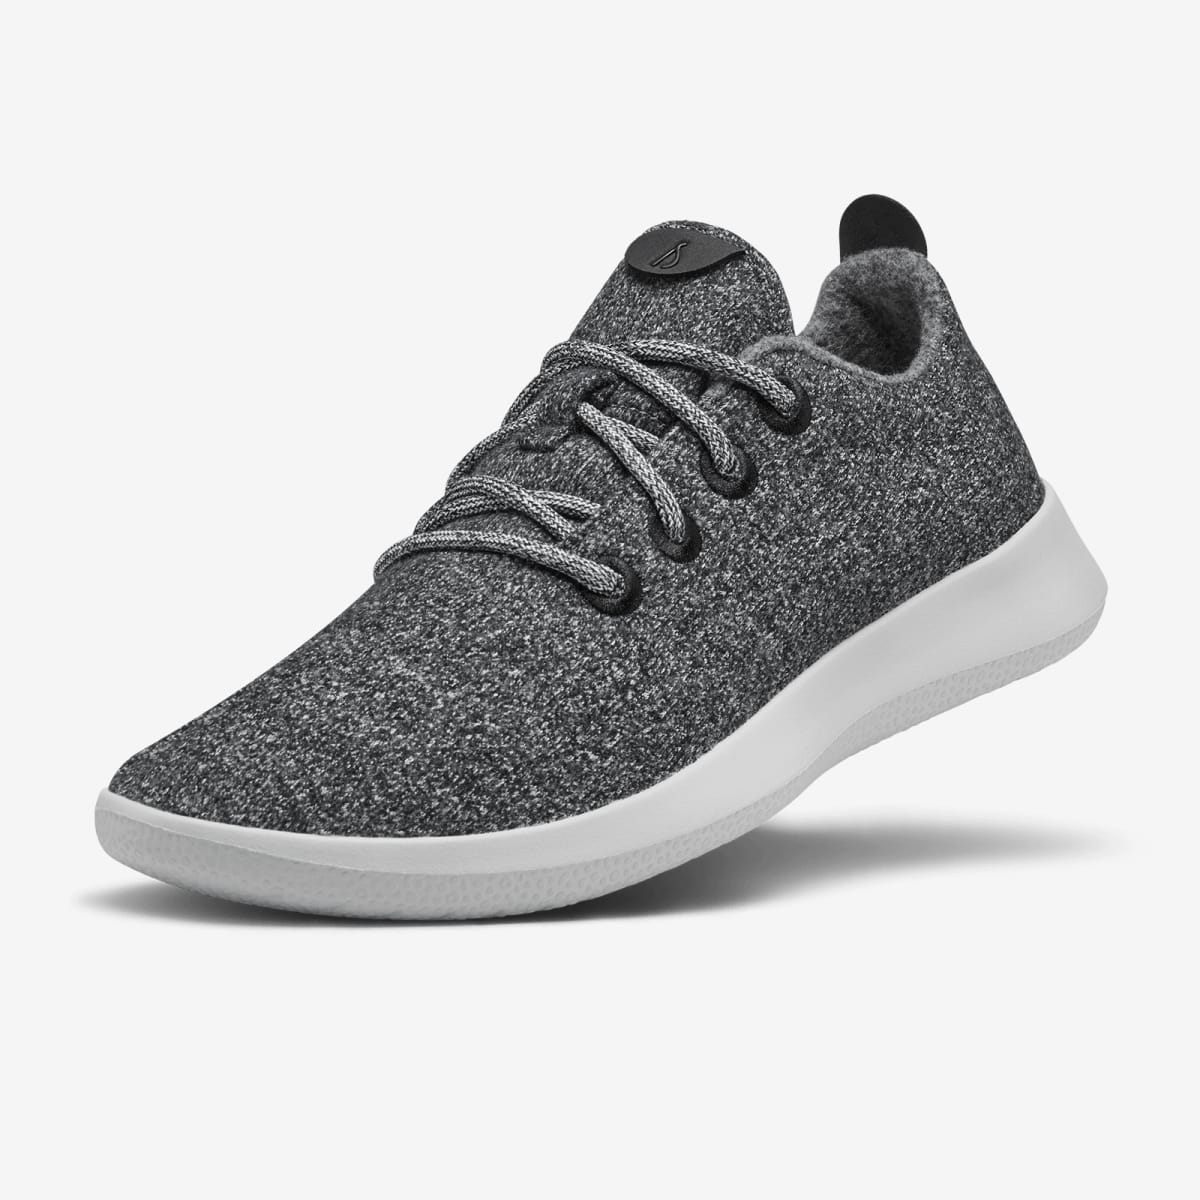 3. Wool Runners by Allbirds sustainable running shoes